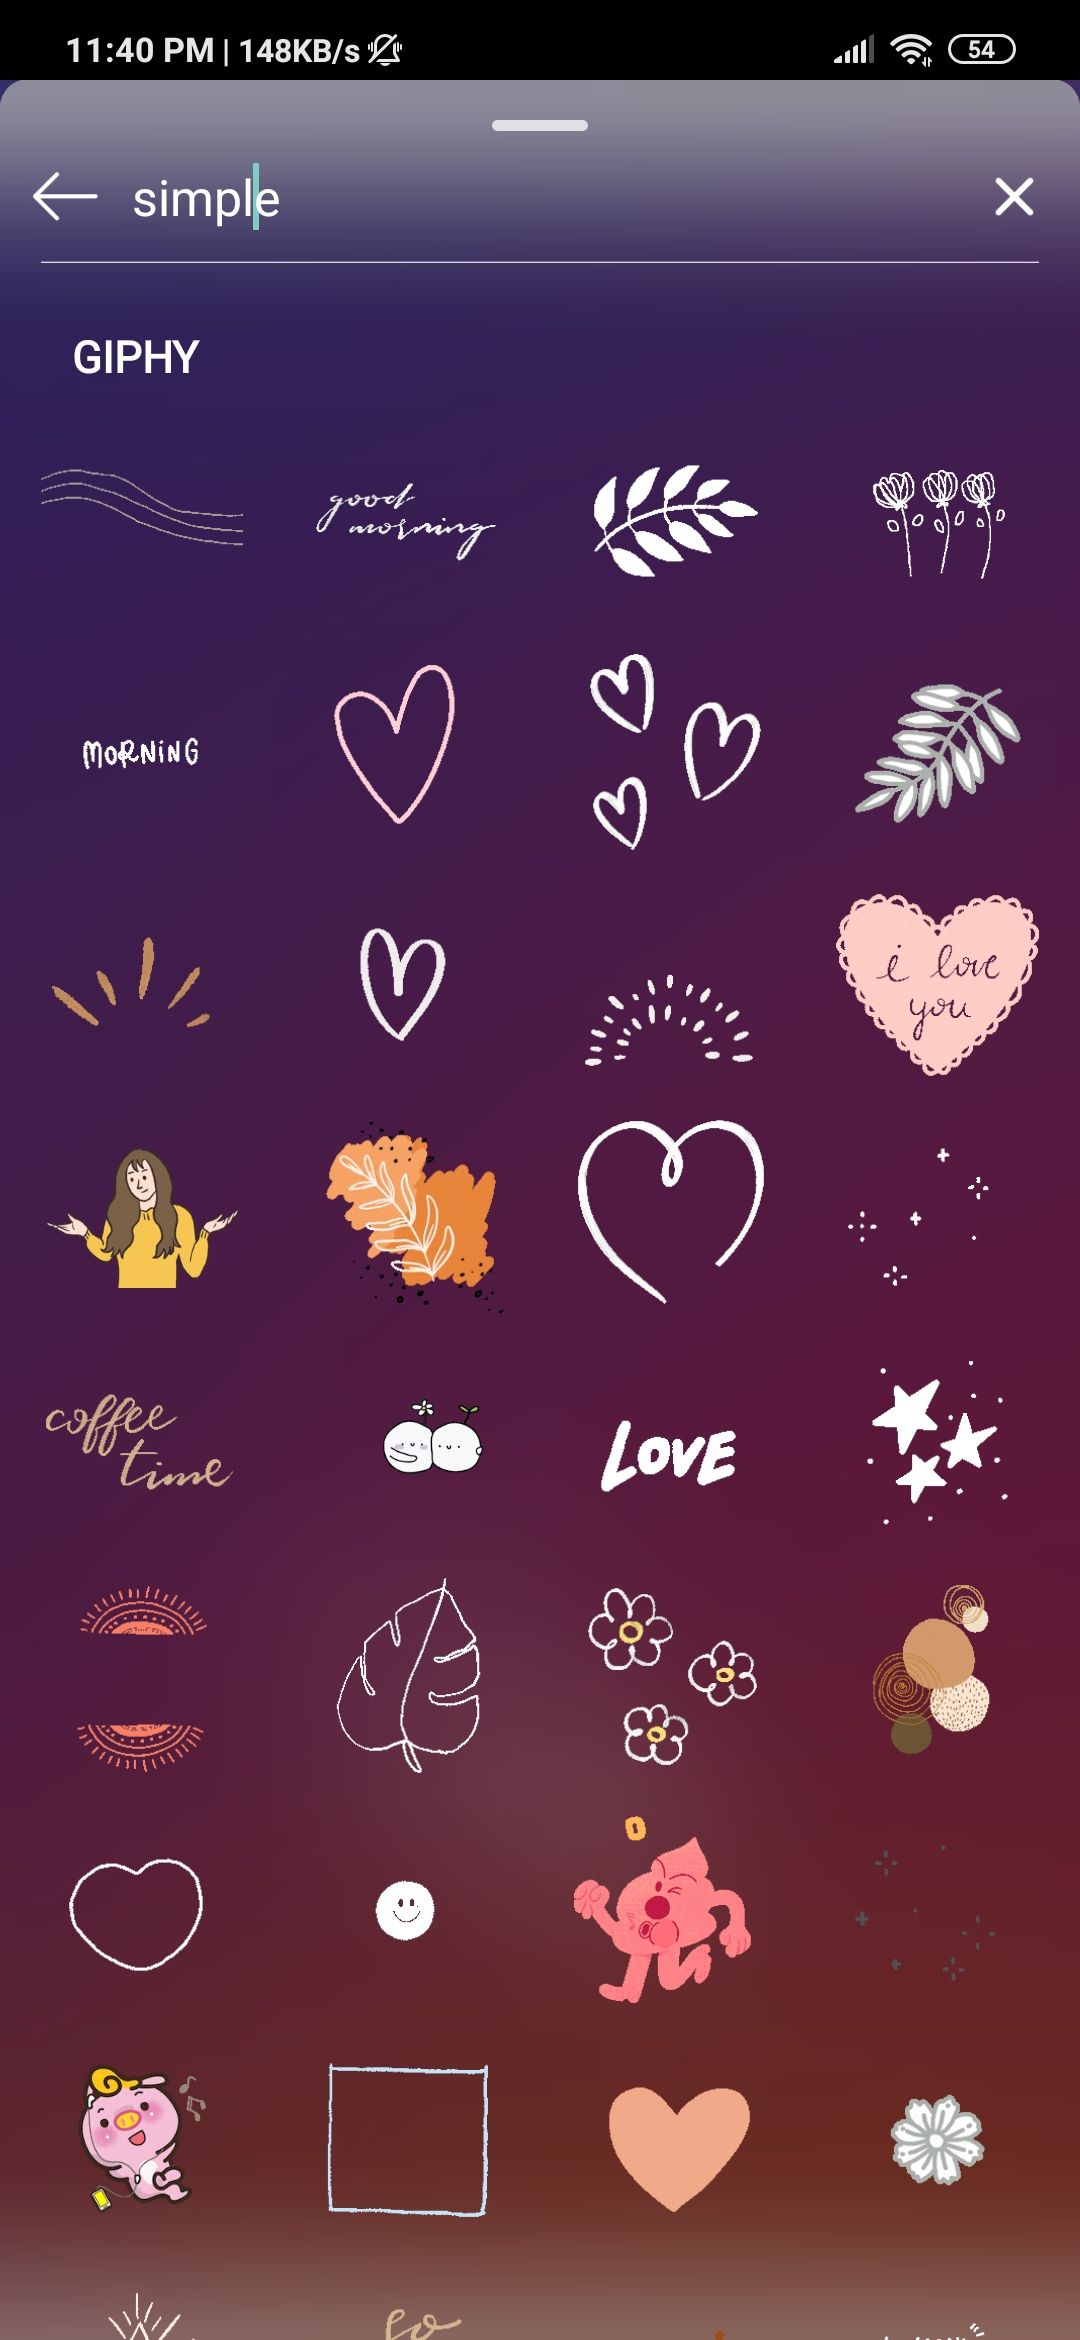 How To Get Aesthetic Instagram Stickers